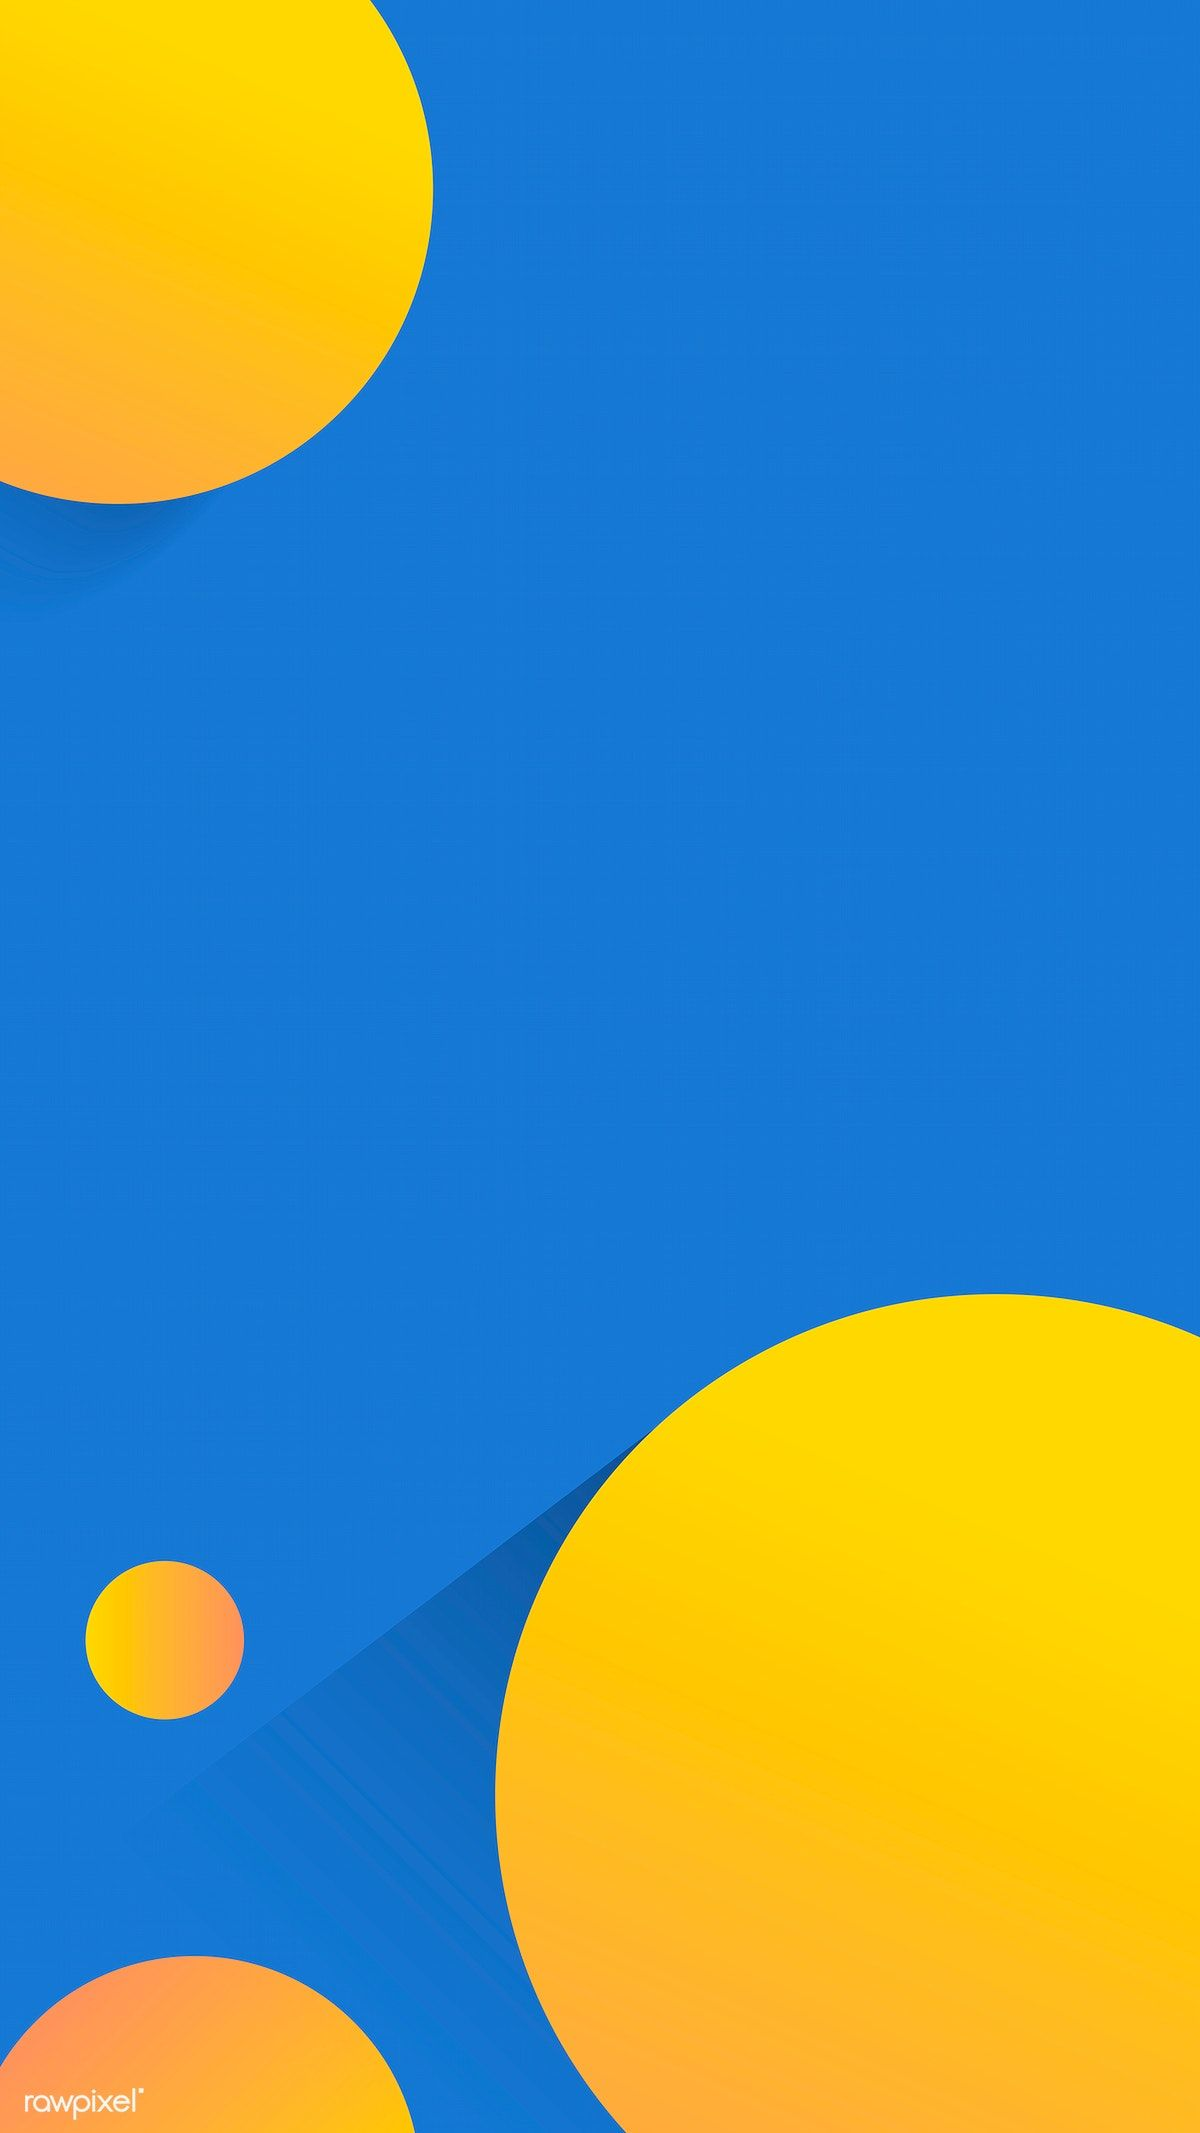 Freebies Resources Iphone Wallpaper Yellow Blue Wallpaper Iphone New Wallpaper Iphone